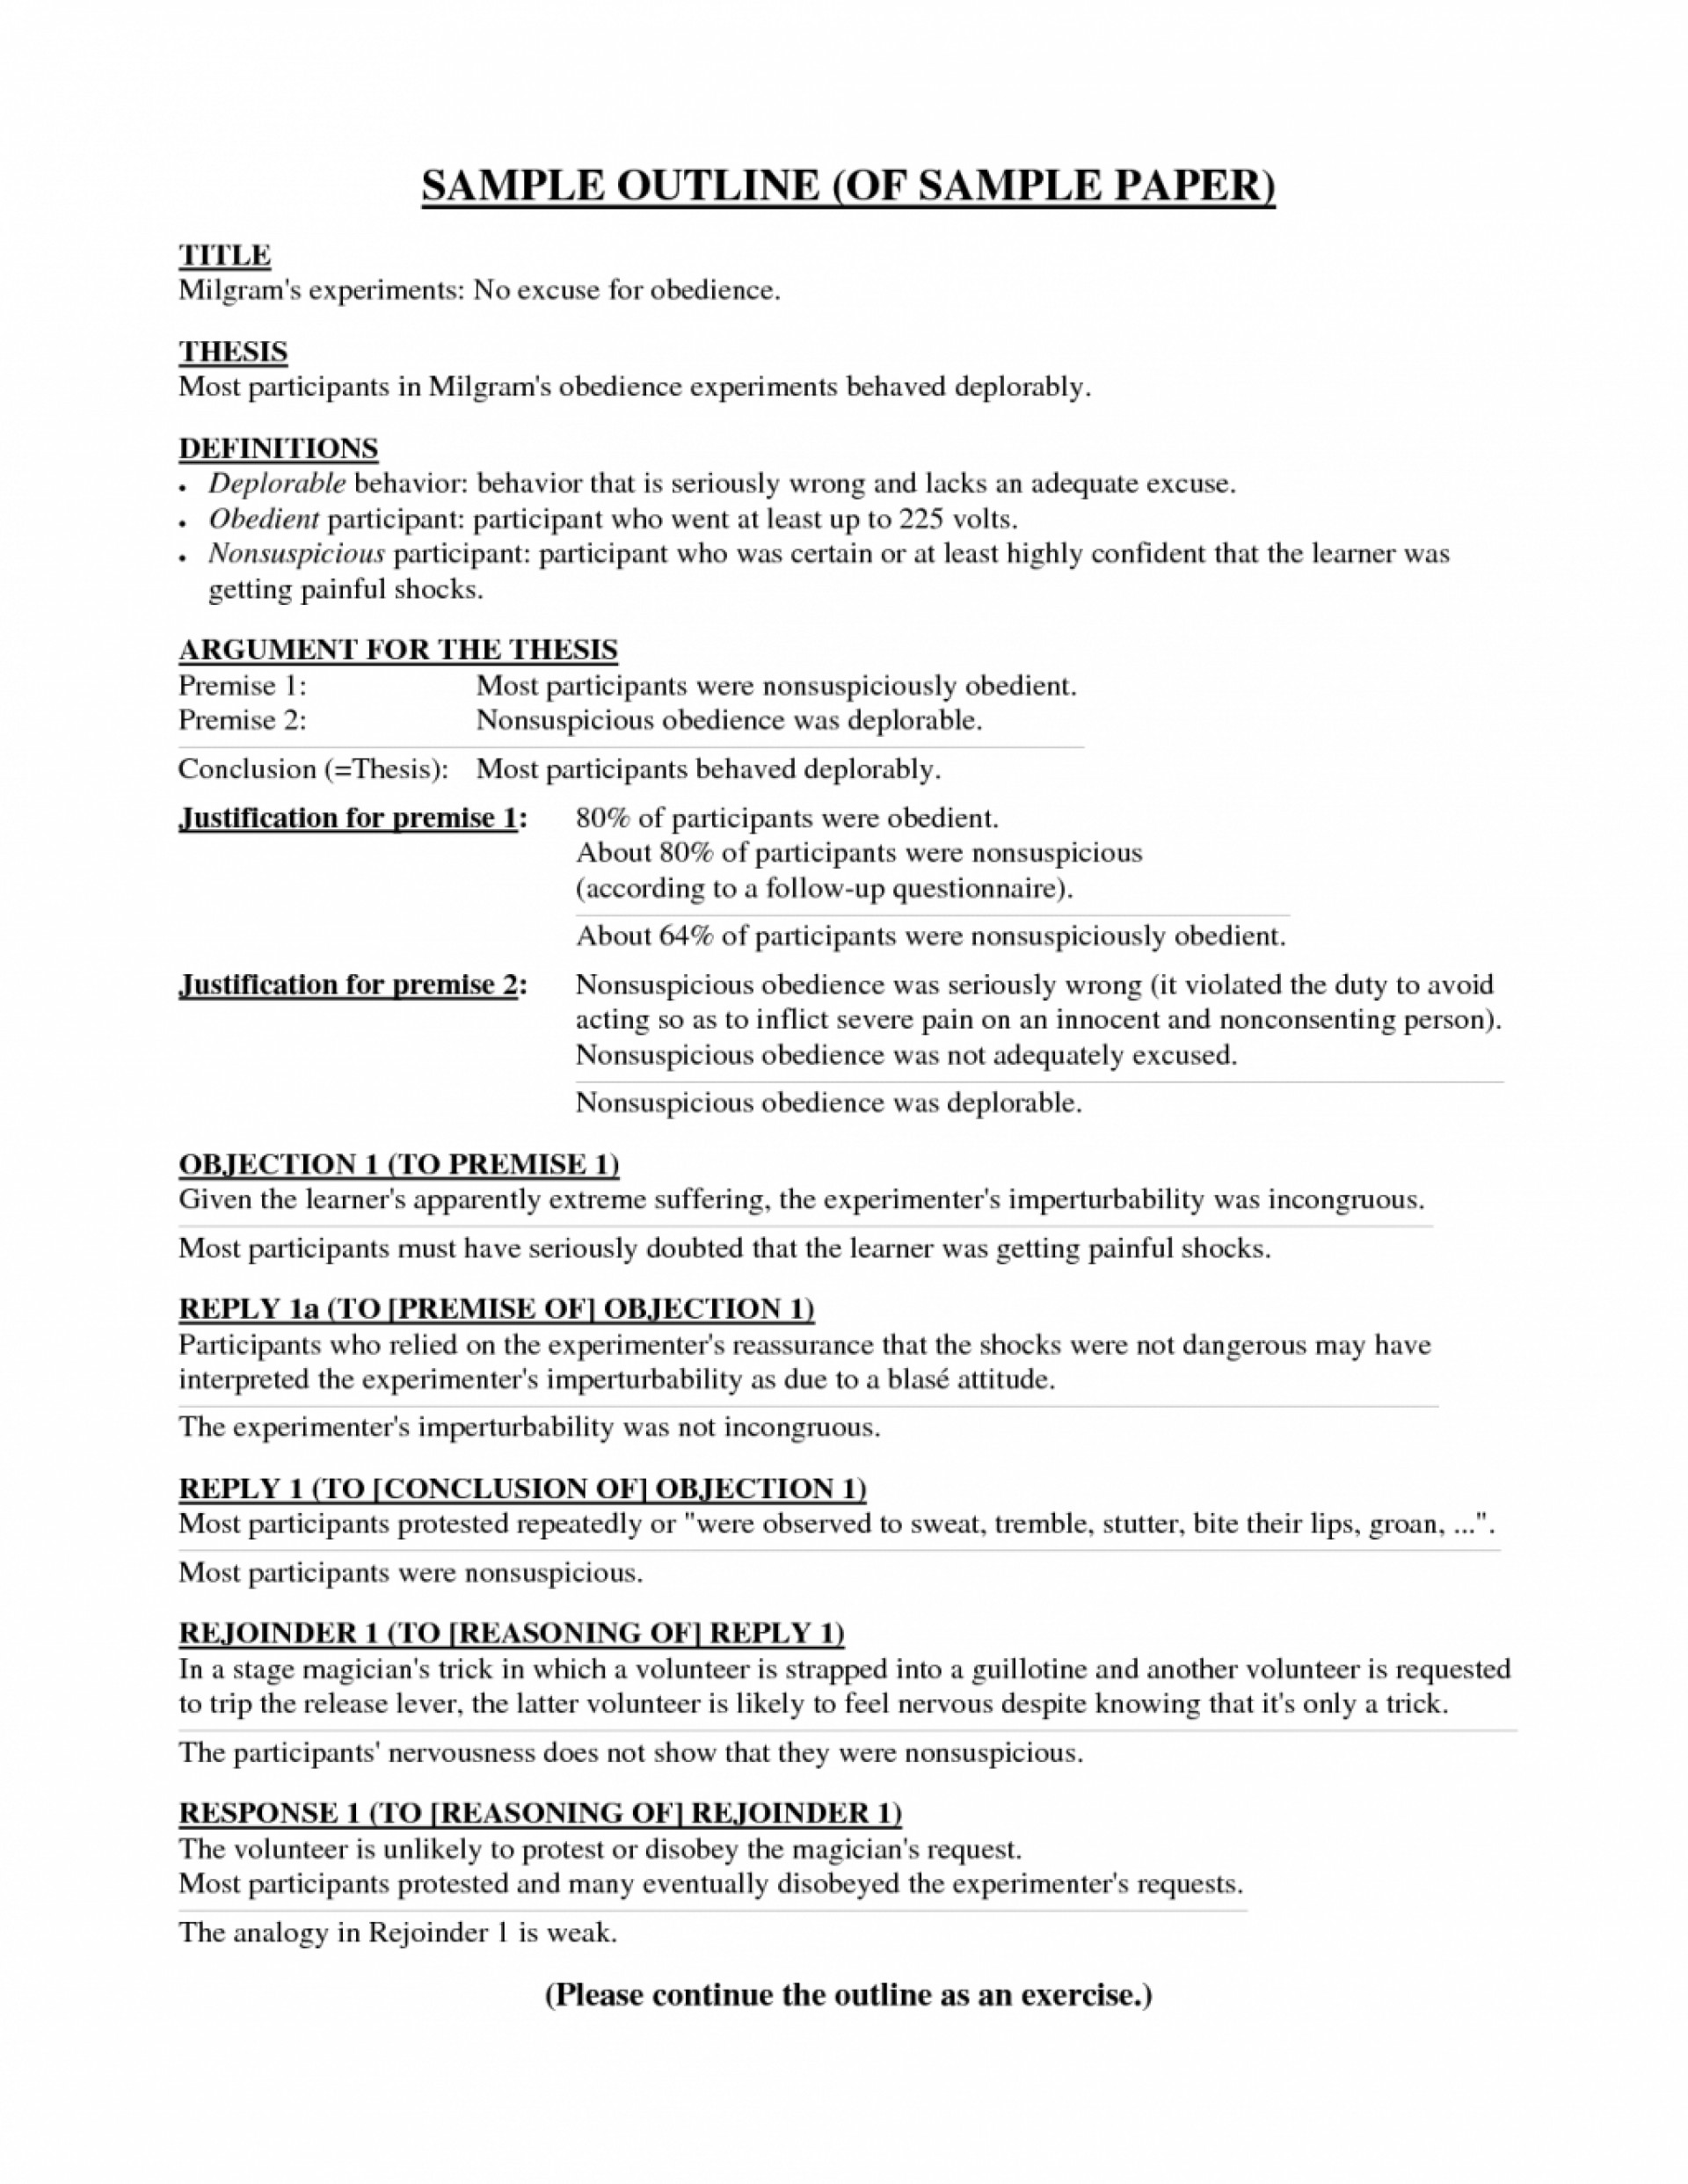 023 20example Essay Layout Thesis Paper Outline Picture Resume Examples Of Outlines For Research Papers Inpa Format20 1024x1325 How To Write Wonderful A Apa Style 1920